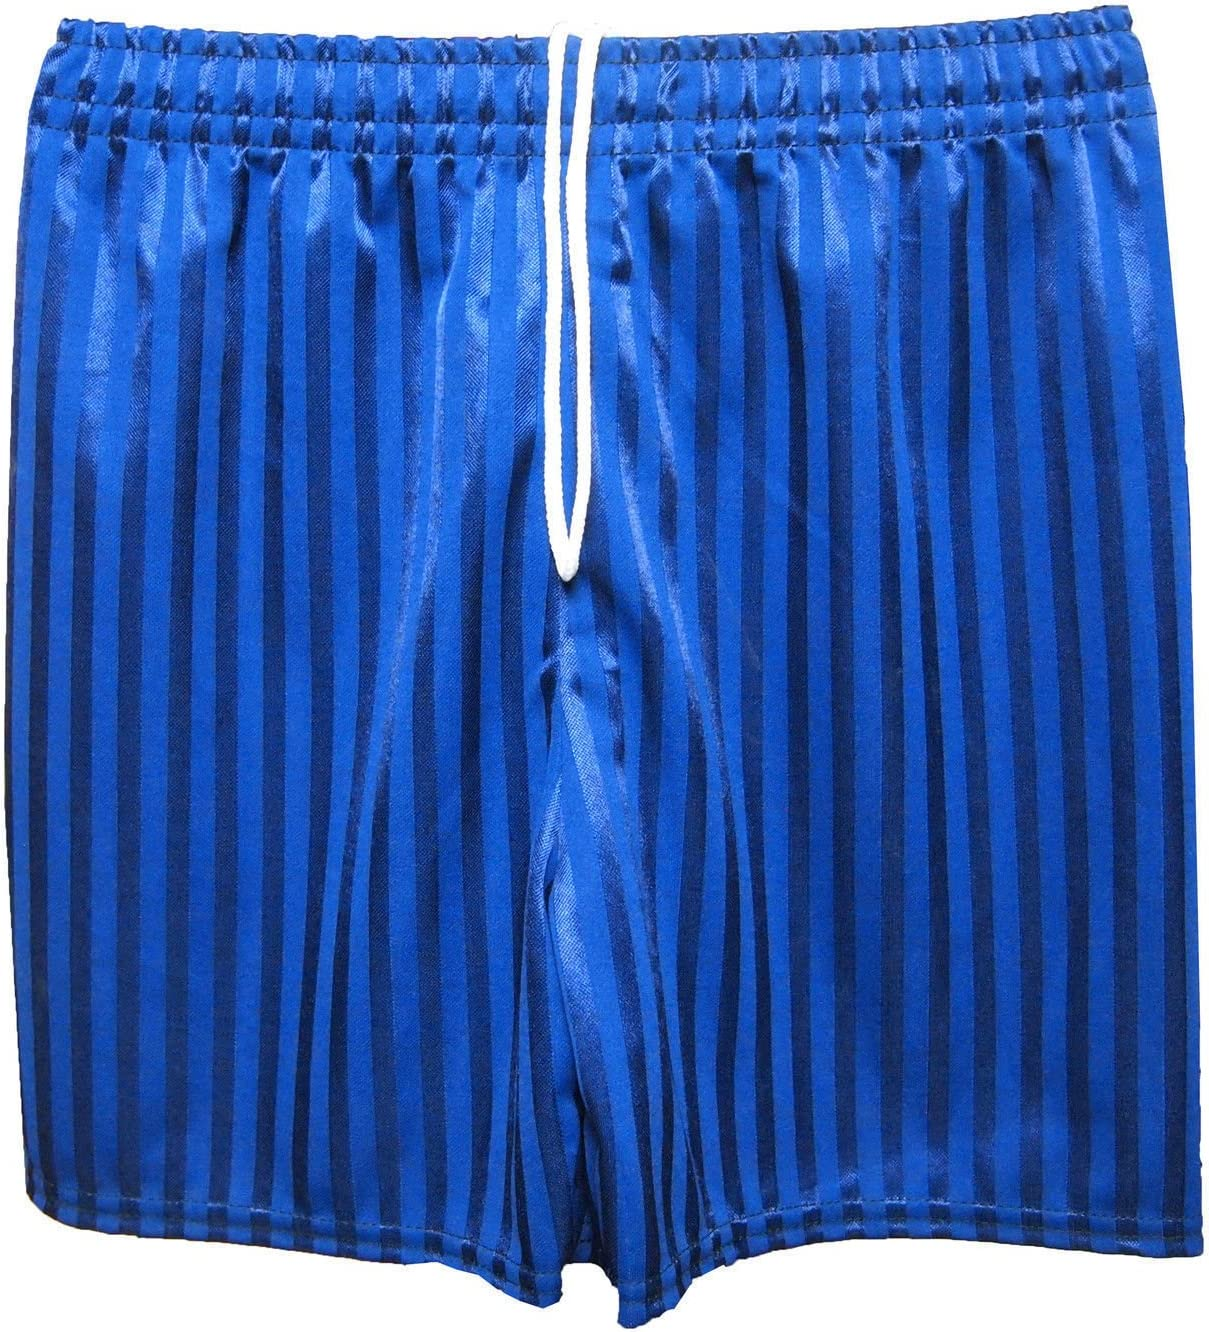 CL BOYS GIRLS MENS KIDS UNISEX SHADOW STRIPE PE SCHOOL SHORTS FOOTBALL GYM GAMES